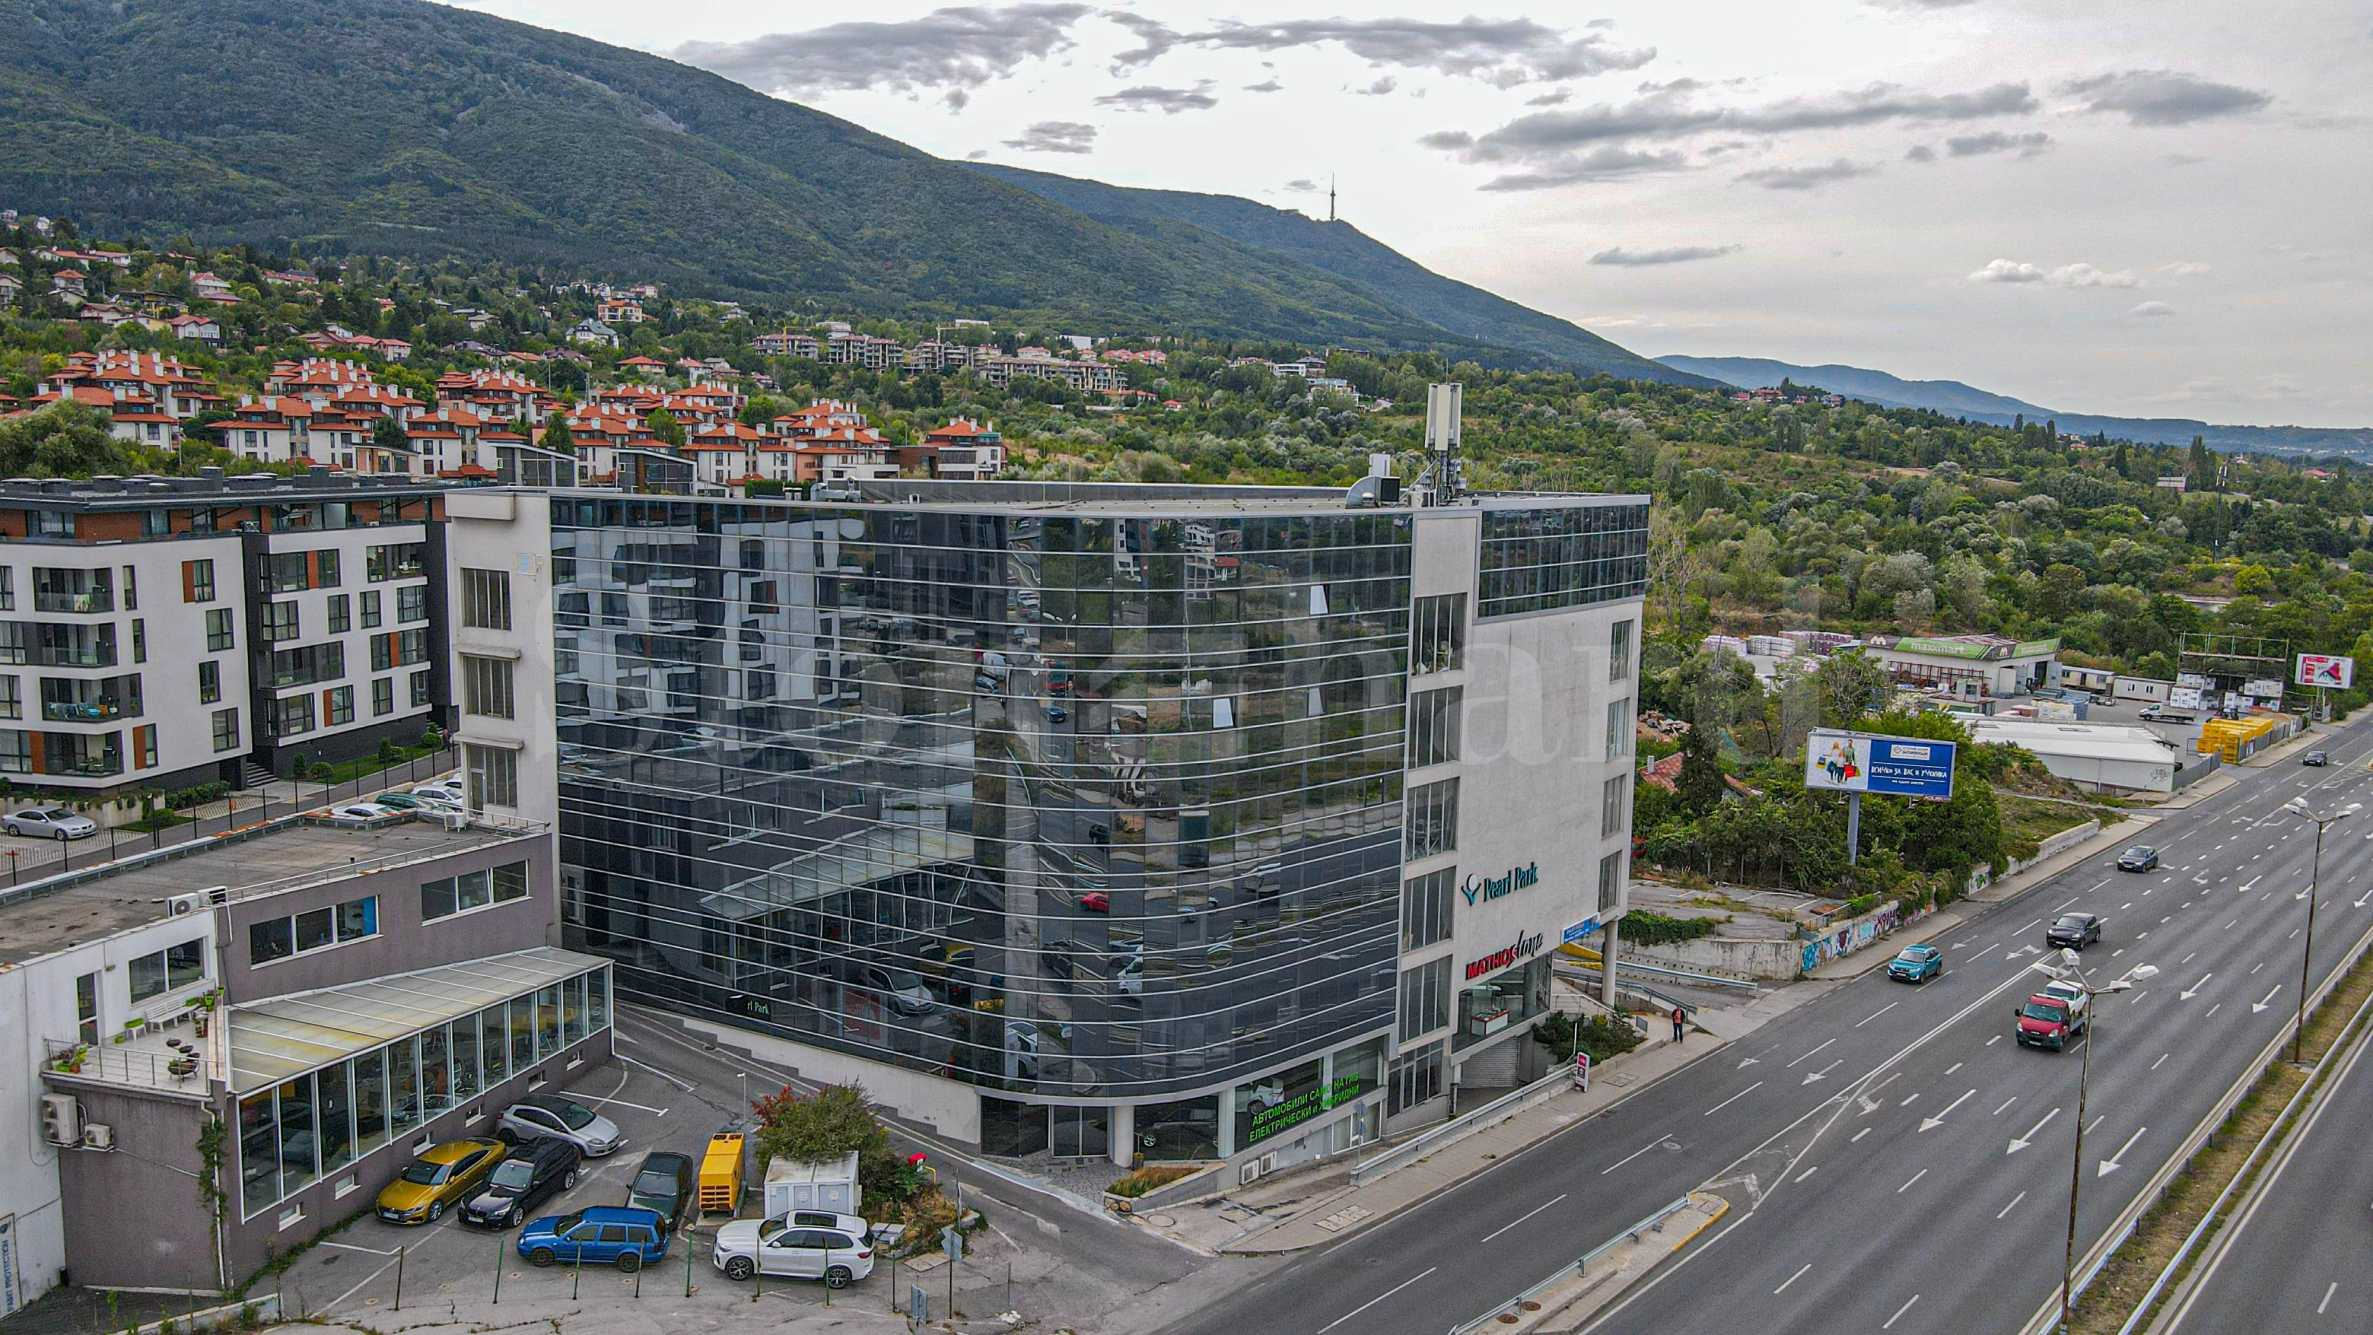 Commercial property in Sofia1 - Stonehard